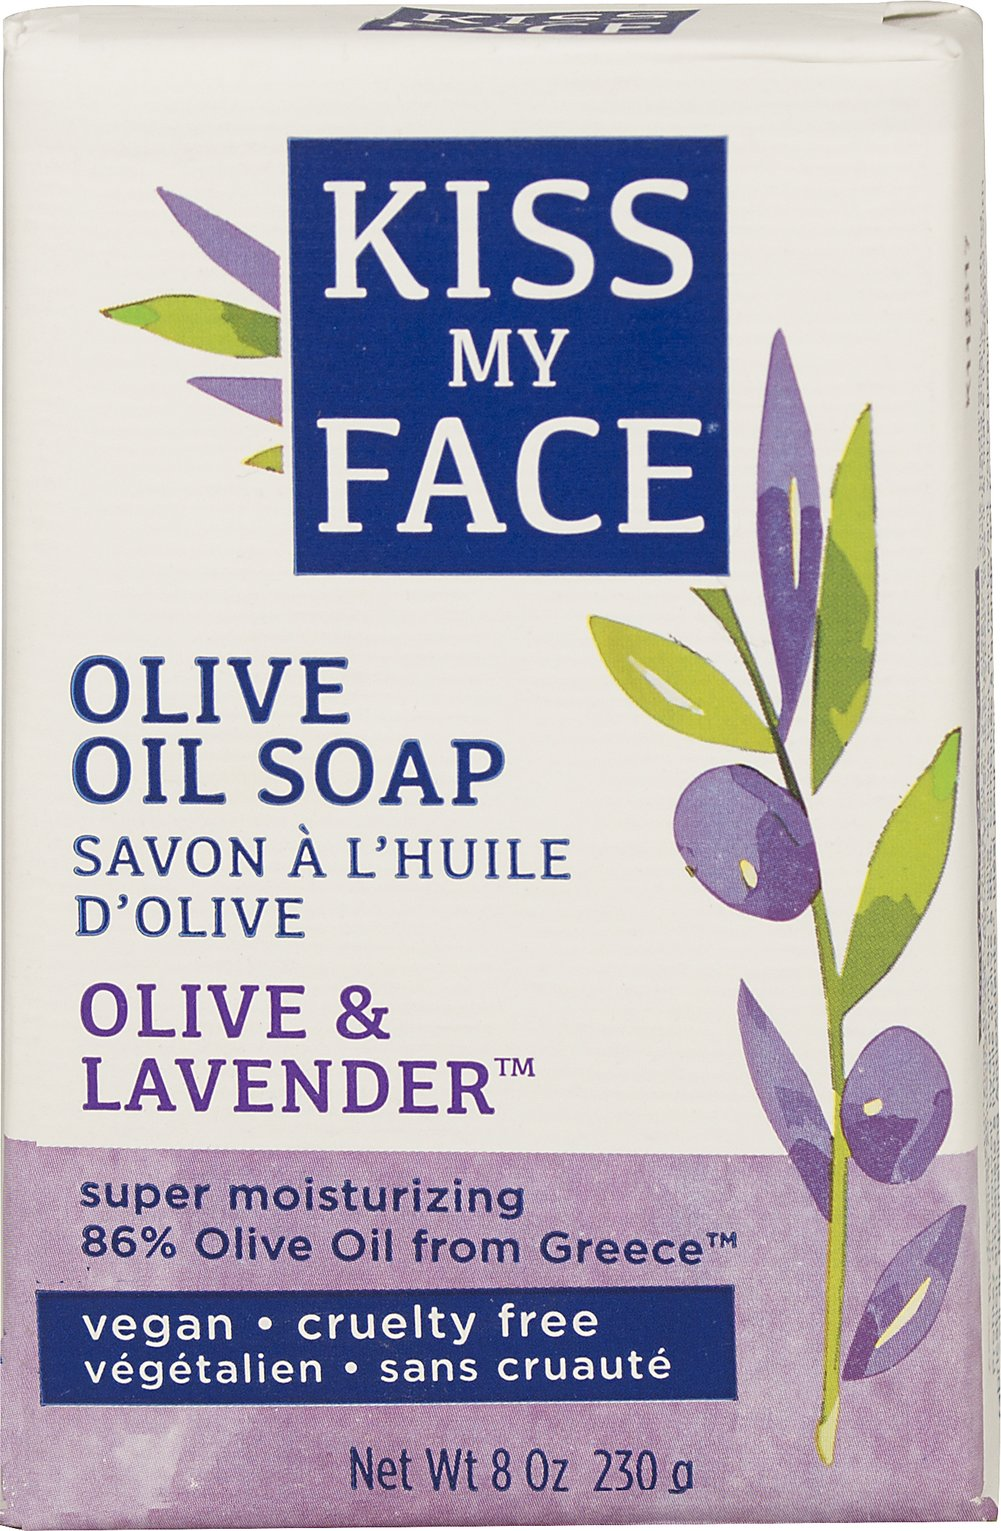 Kiss My Face Olive & Lavender Bar Soap  8 oz Bar  $2.99